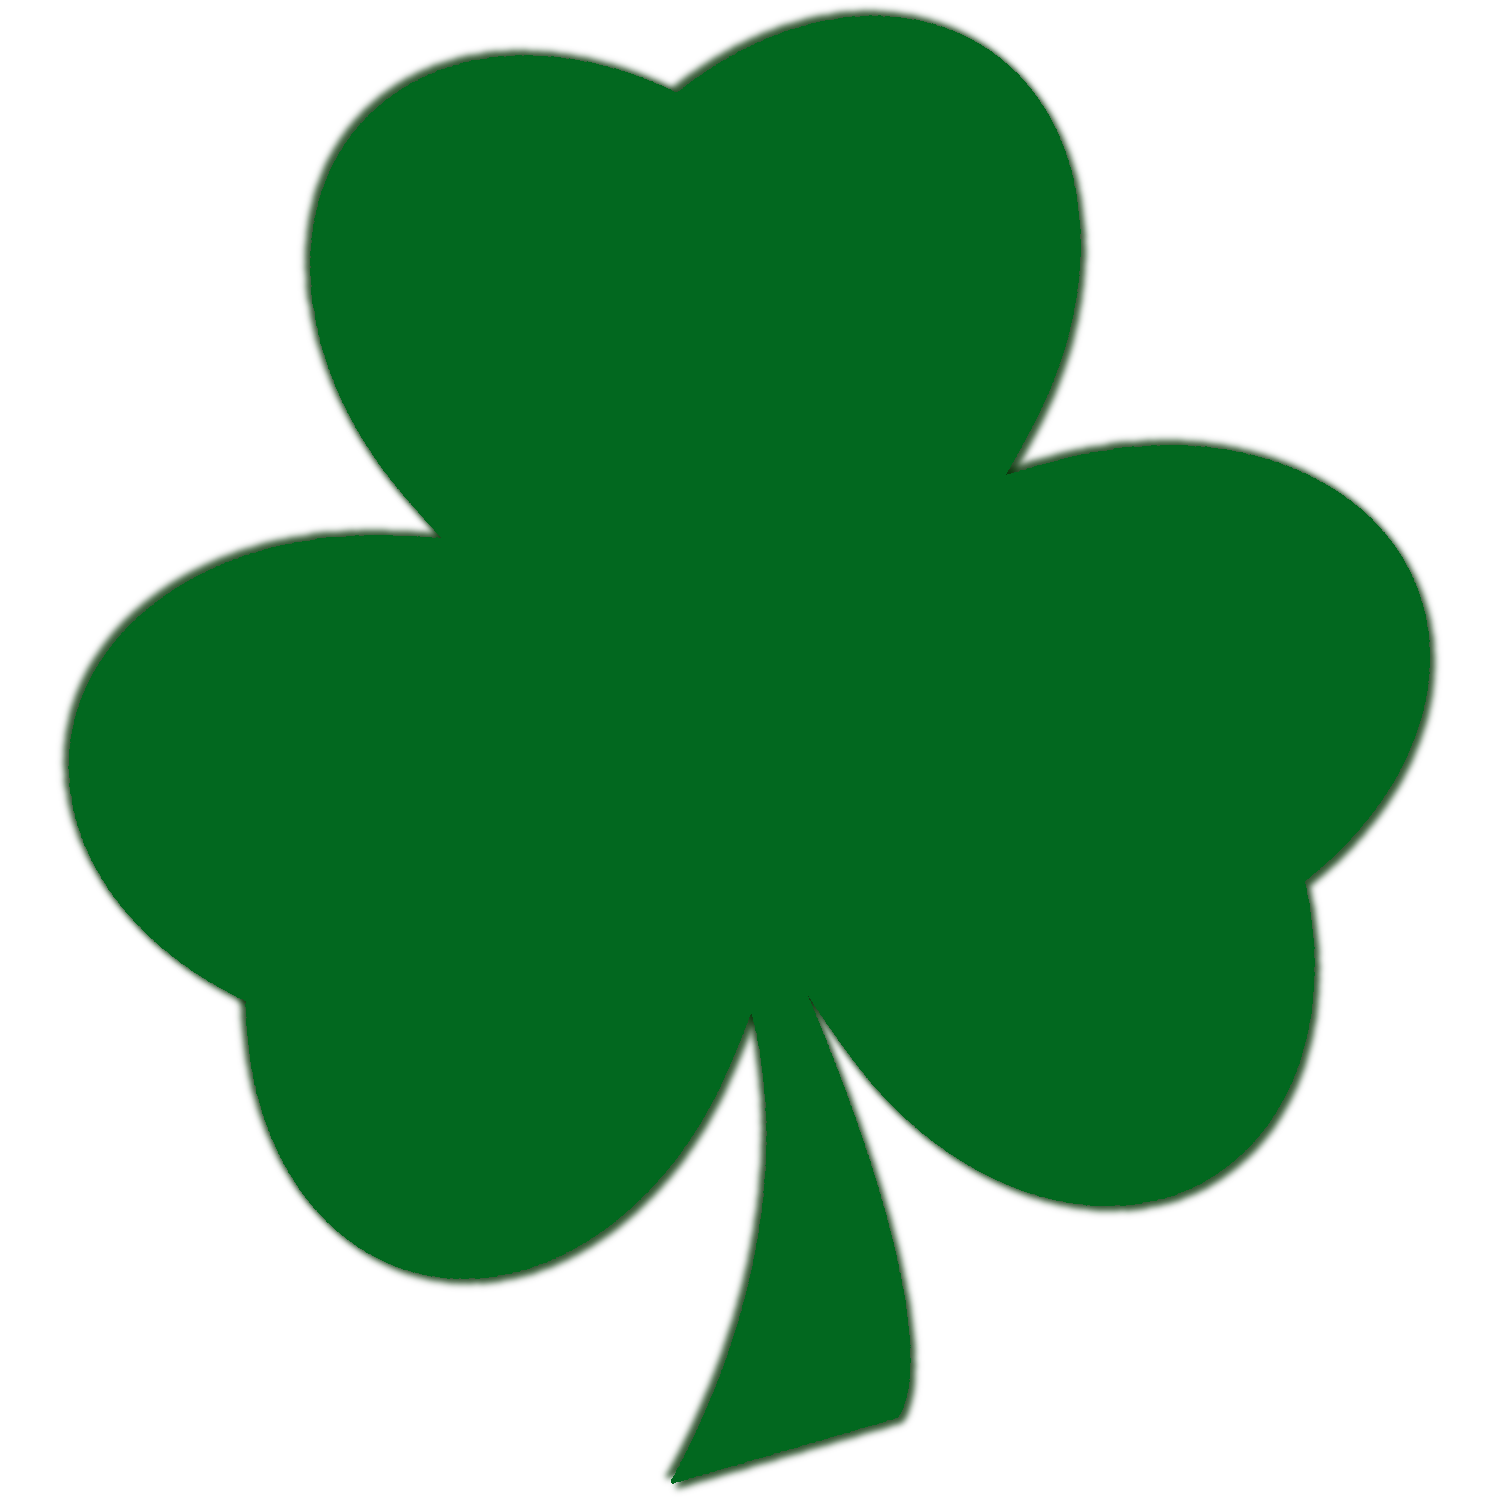 Clover Image PNG Image